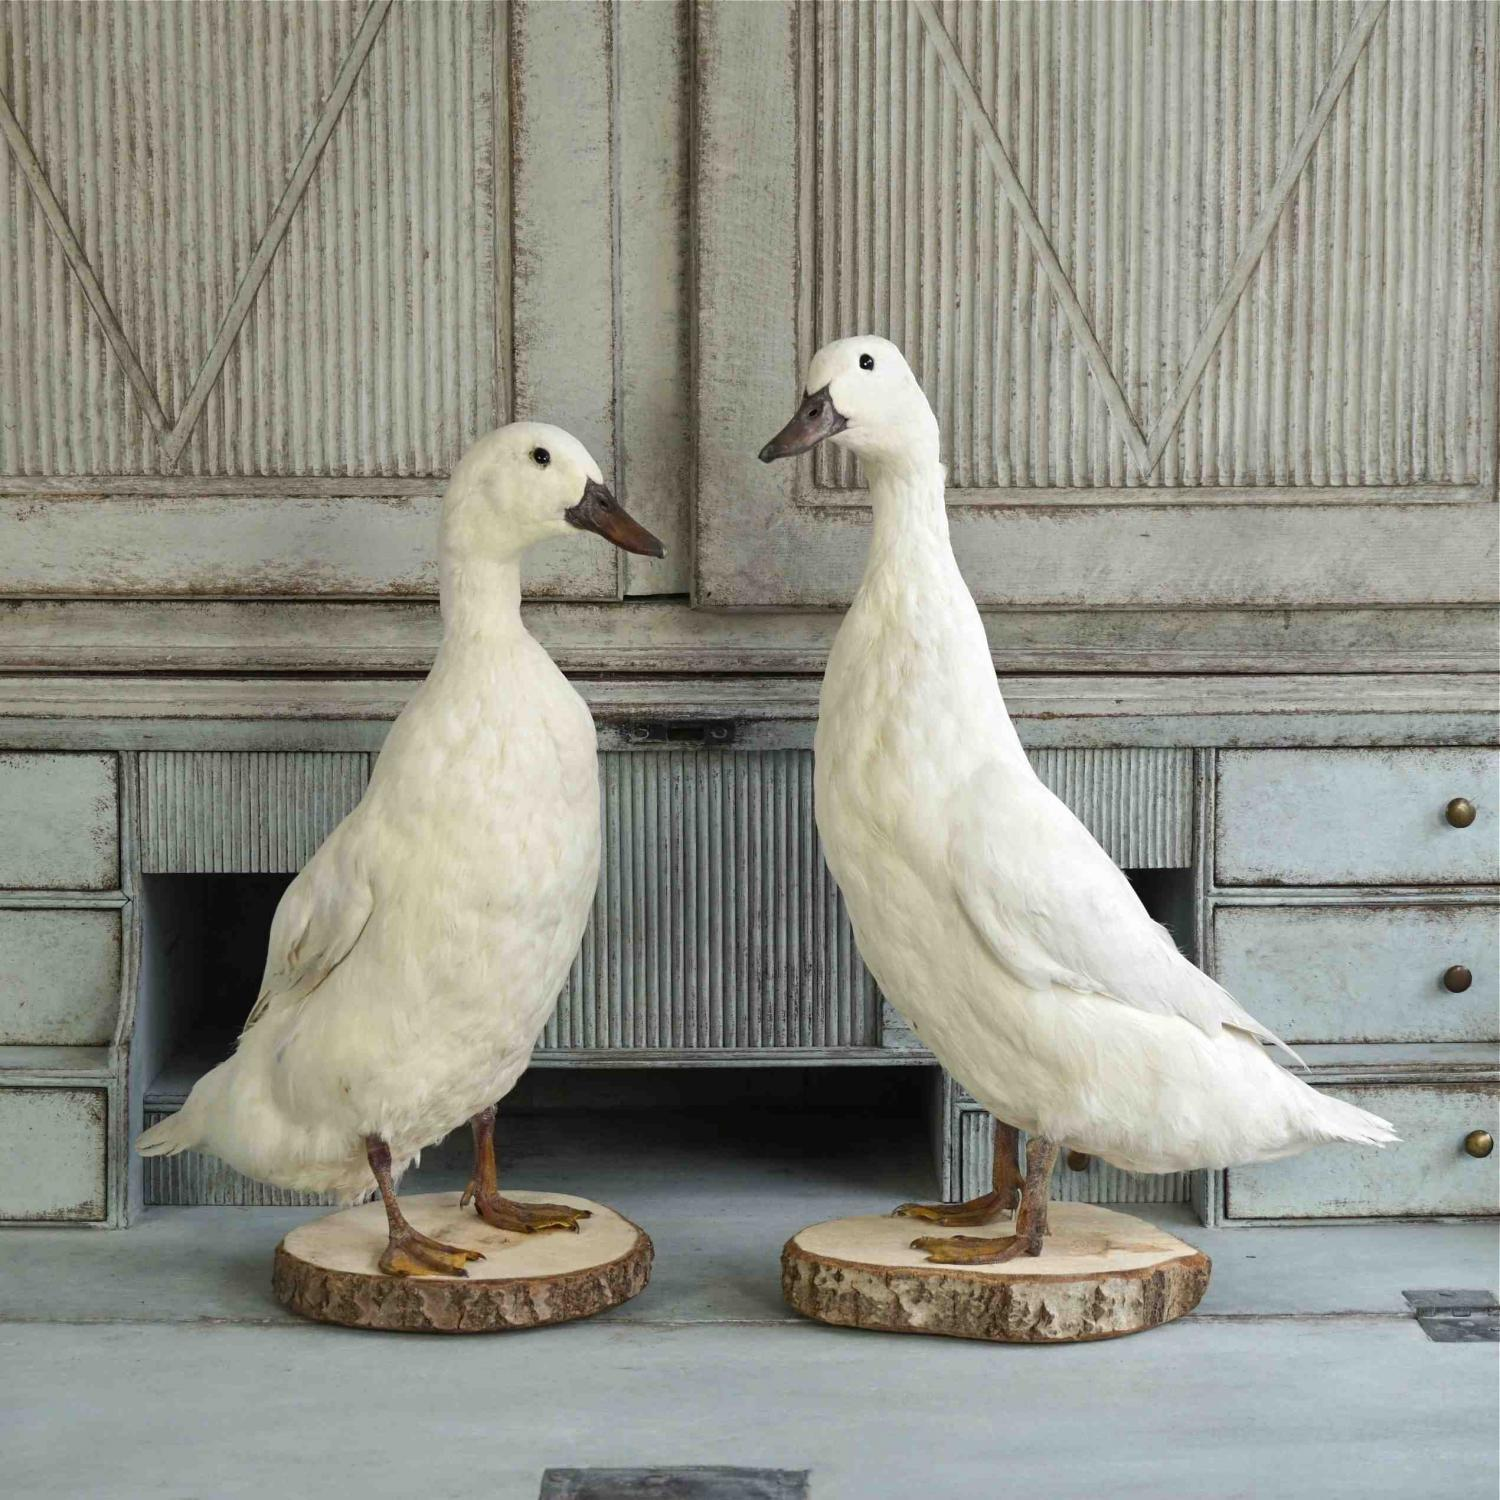 HANDSOME PAIR OF SNOW WHITE DUCKS in